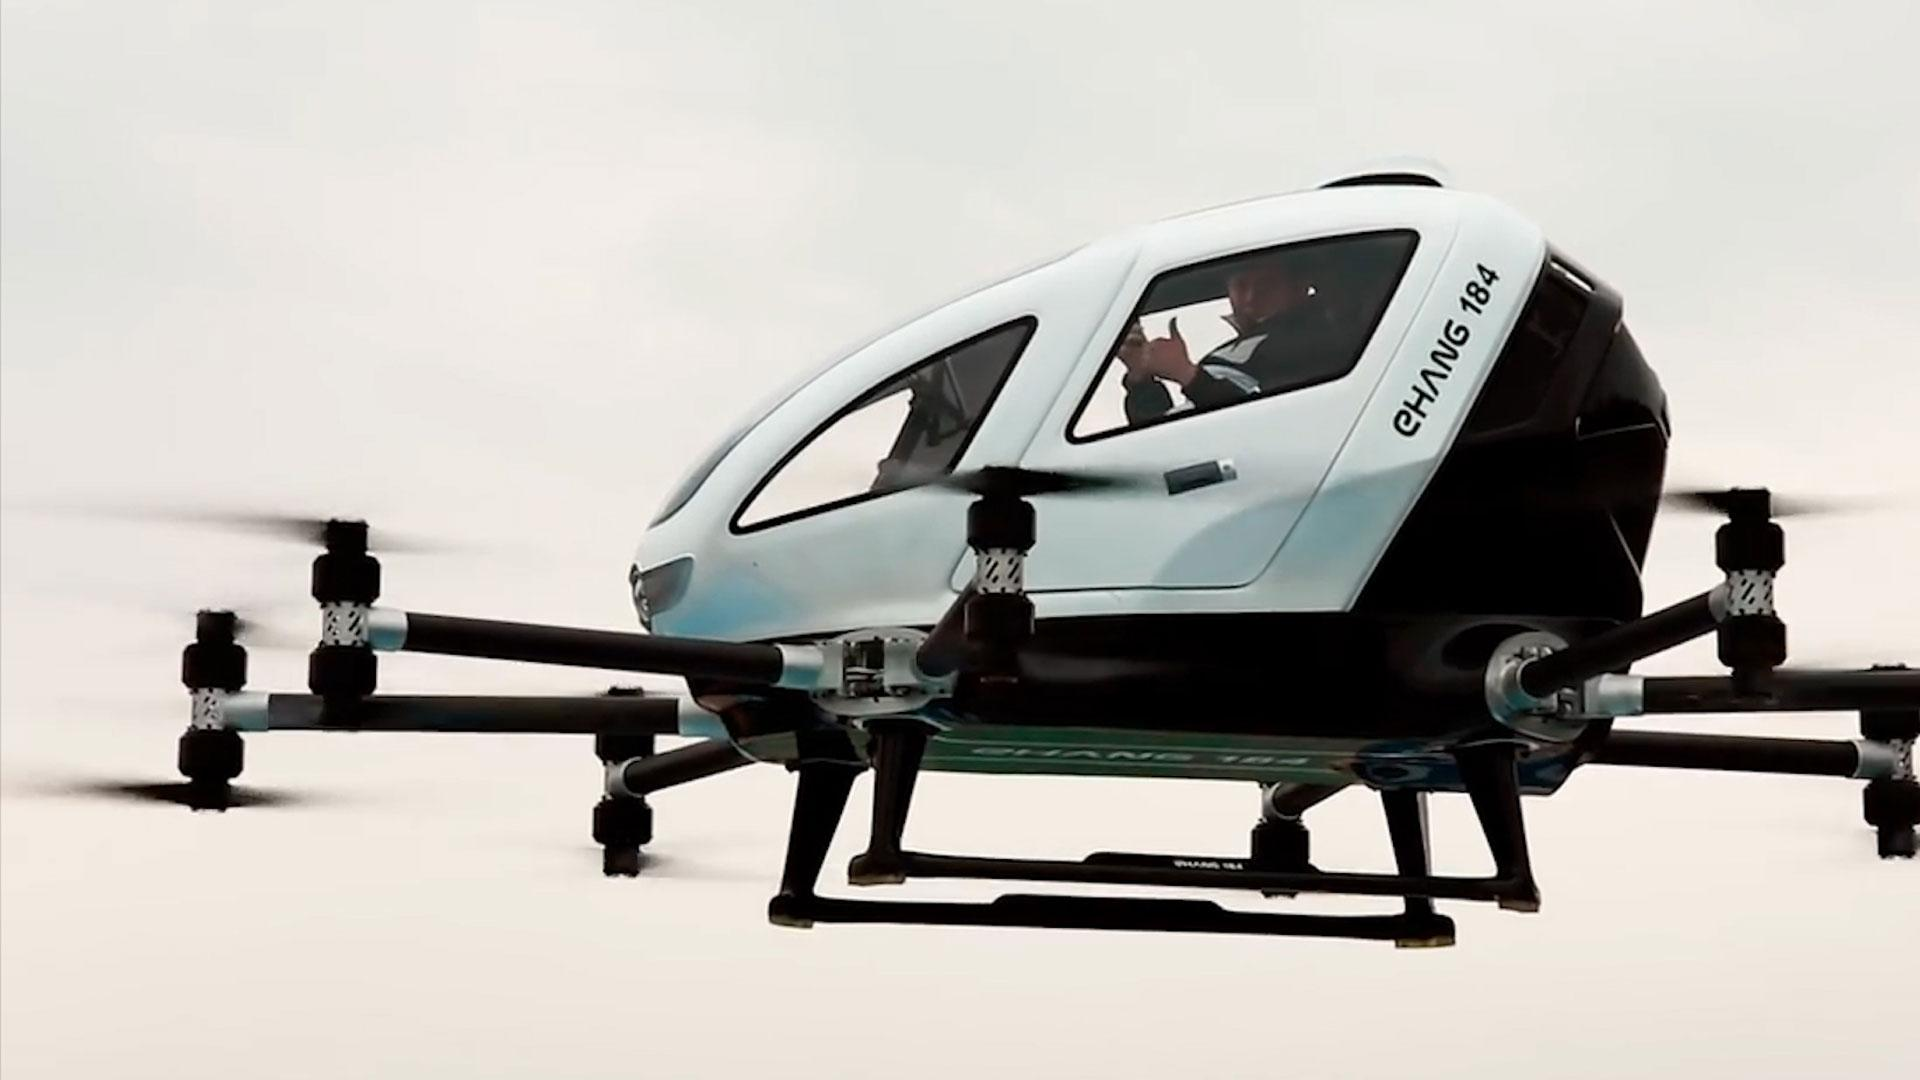 Ehang's 184 Passenger Drone Takes To The Skies In Remarkable Footage